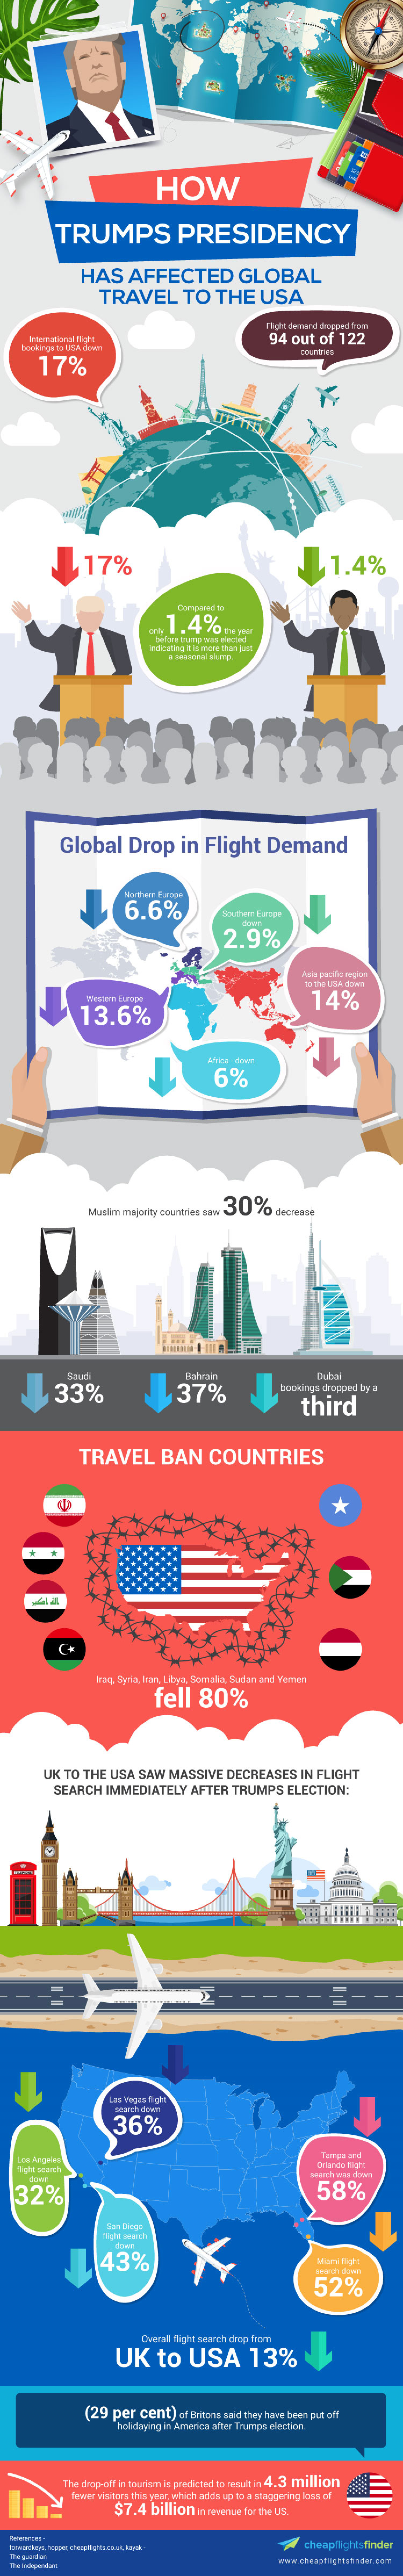 How Trumps Presidency Has Affected Travel to the USA Infographic